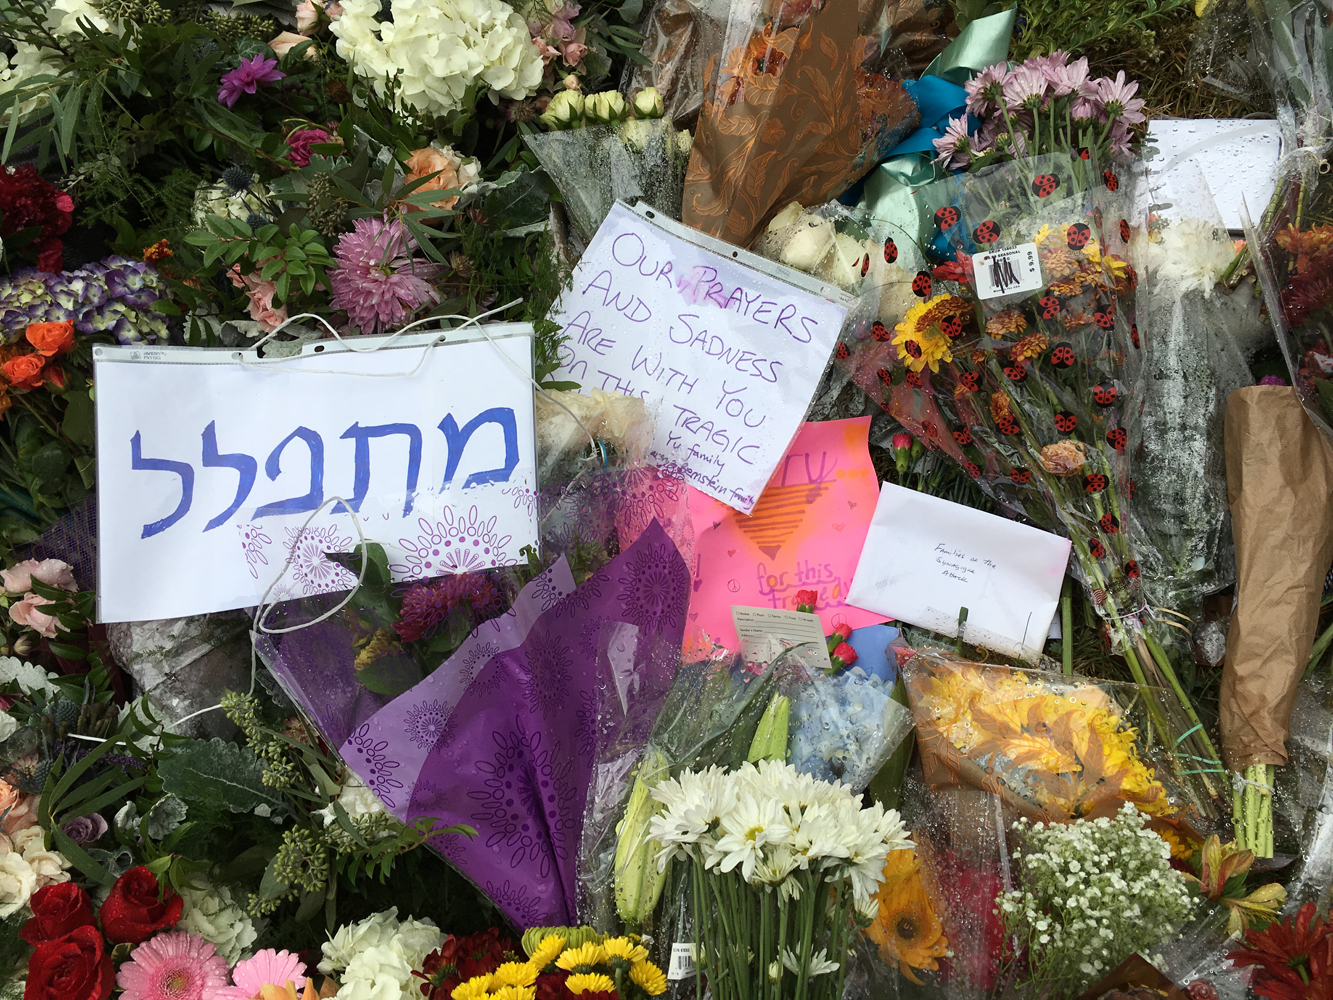 """Pittsburgh community members leave flowers and notes outside the Tree of Life Synagogue, including a sign that says """"praying"""" in Hebrew."""